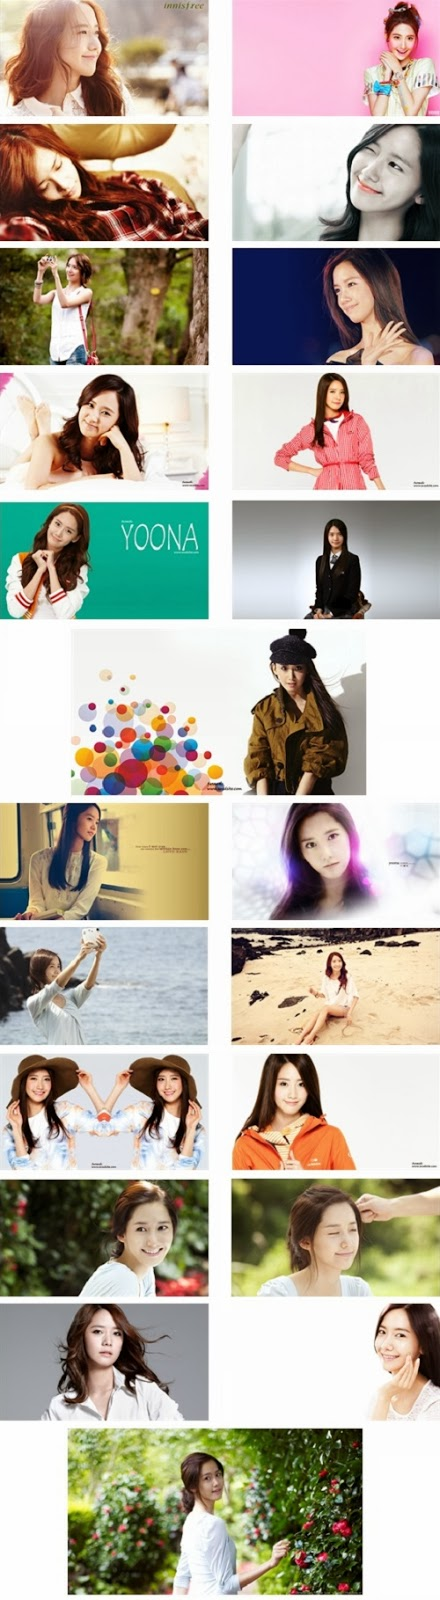 Yoona SNSD Theme For Windows 7 And 8 8.1